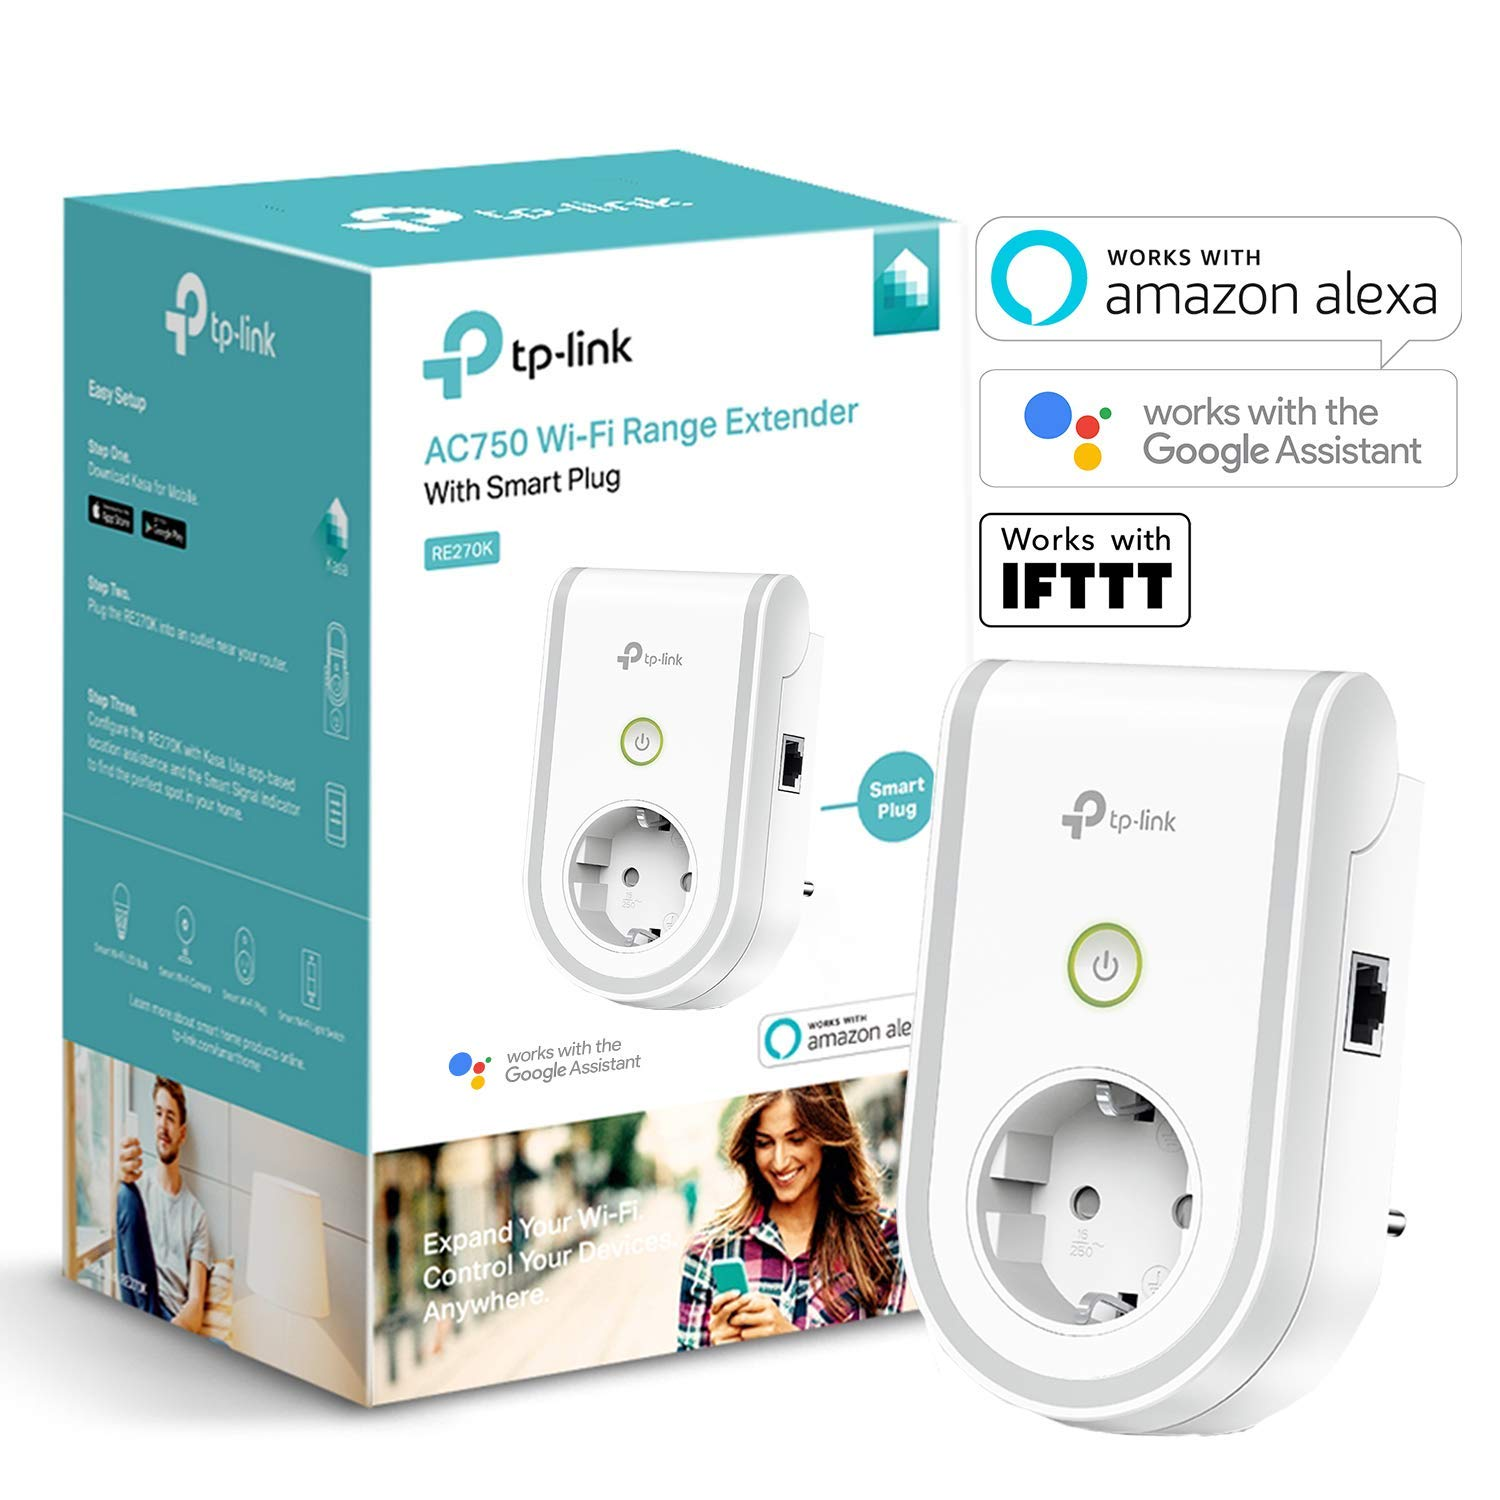 TP-Link WLAN Steckdose Repeater amazon